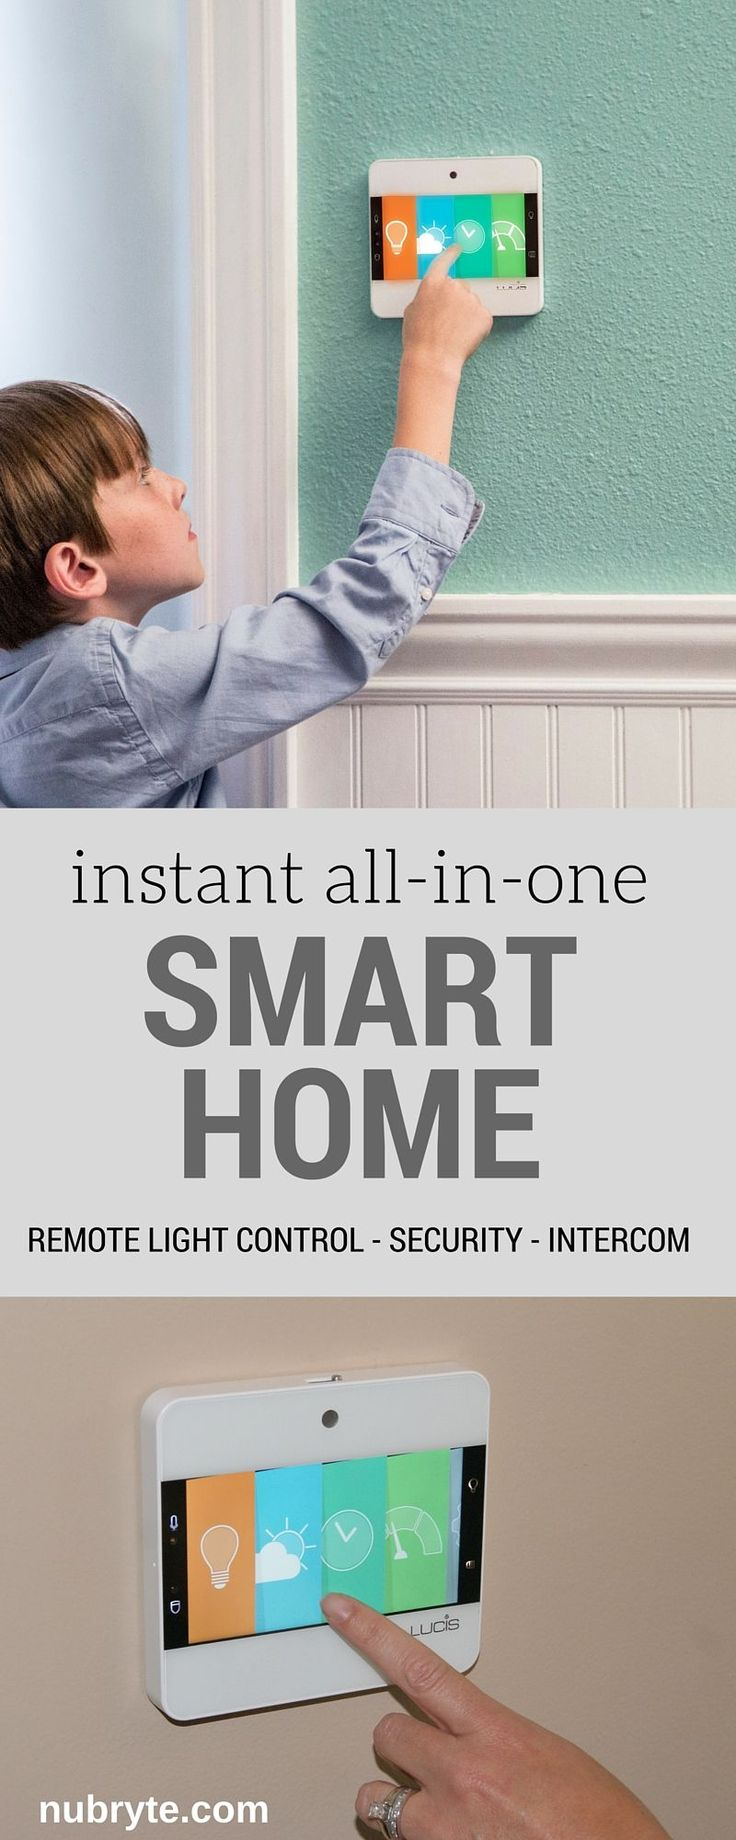 Want to add smart home technology to your home? Here's 4 reasons why you should upgrade your home with NuBryte all-in-one smart home!